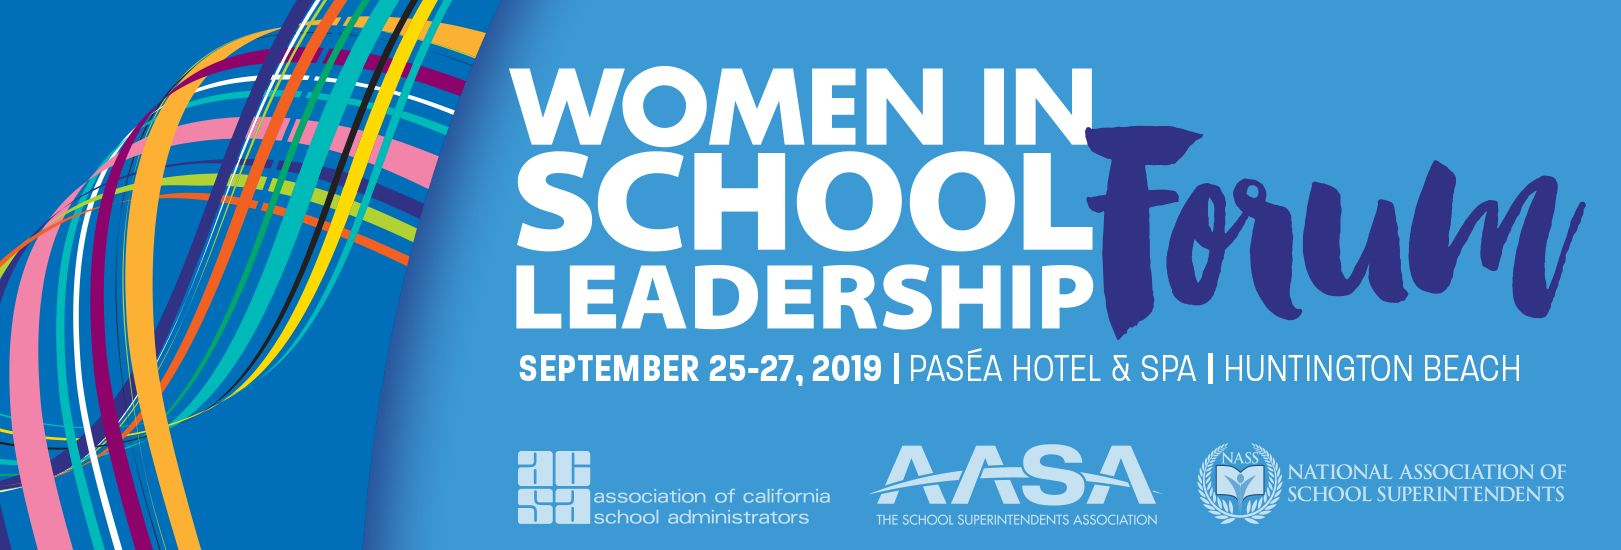 Women in School Leadership Forum from September 24 to 27 in Huntington Beach, California.